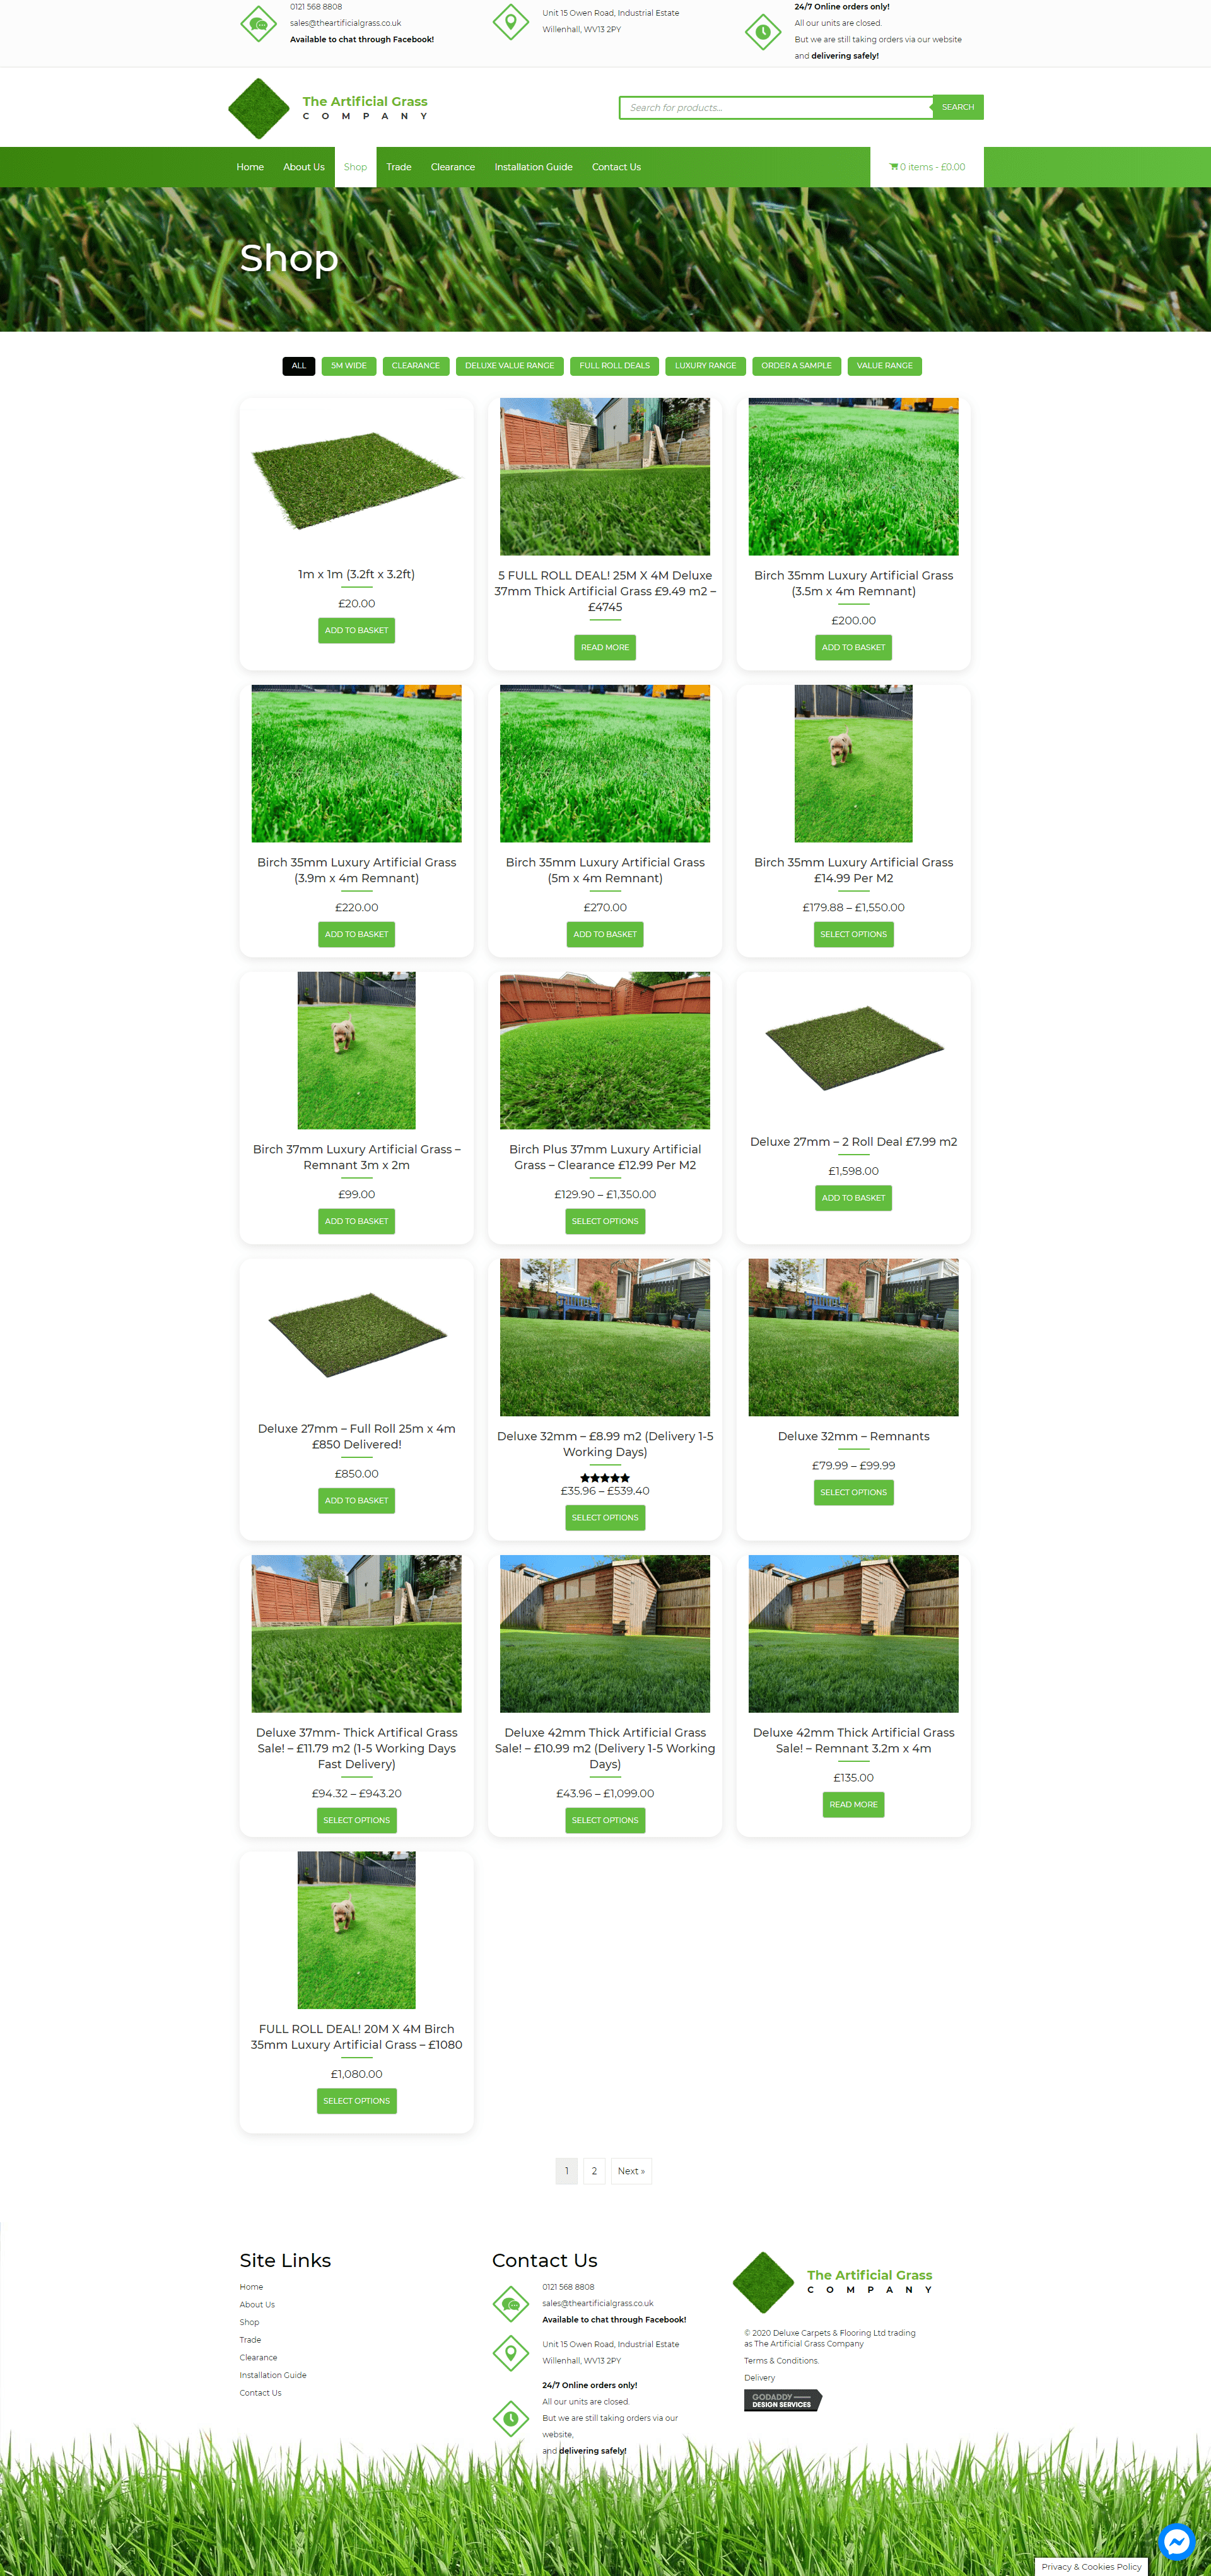 The artificial grass company Store Pafe